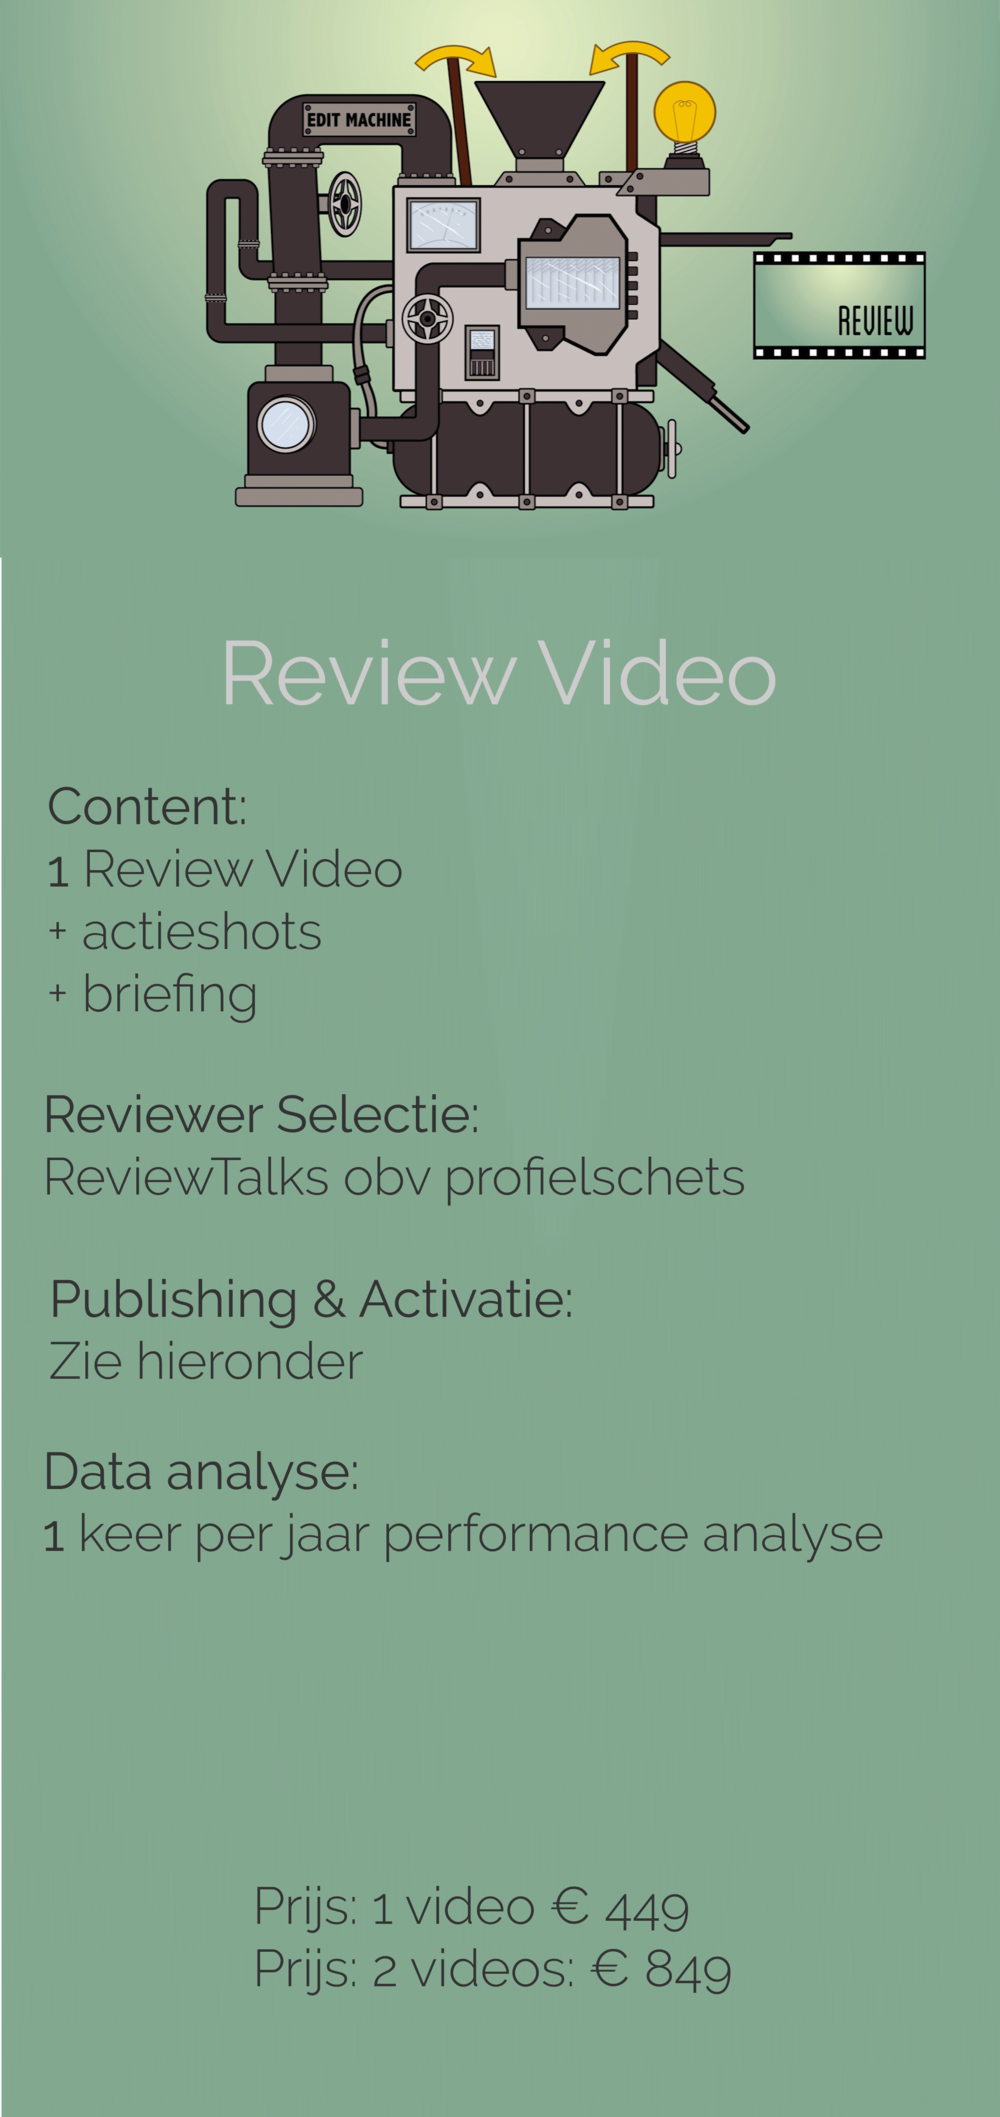 review video tarief